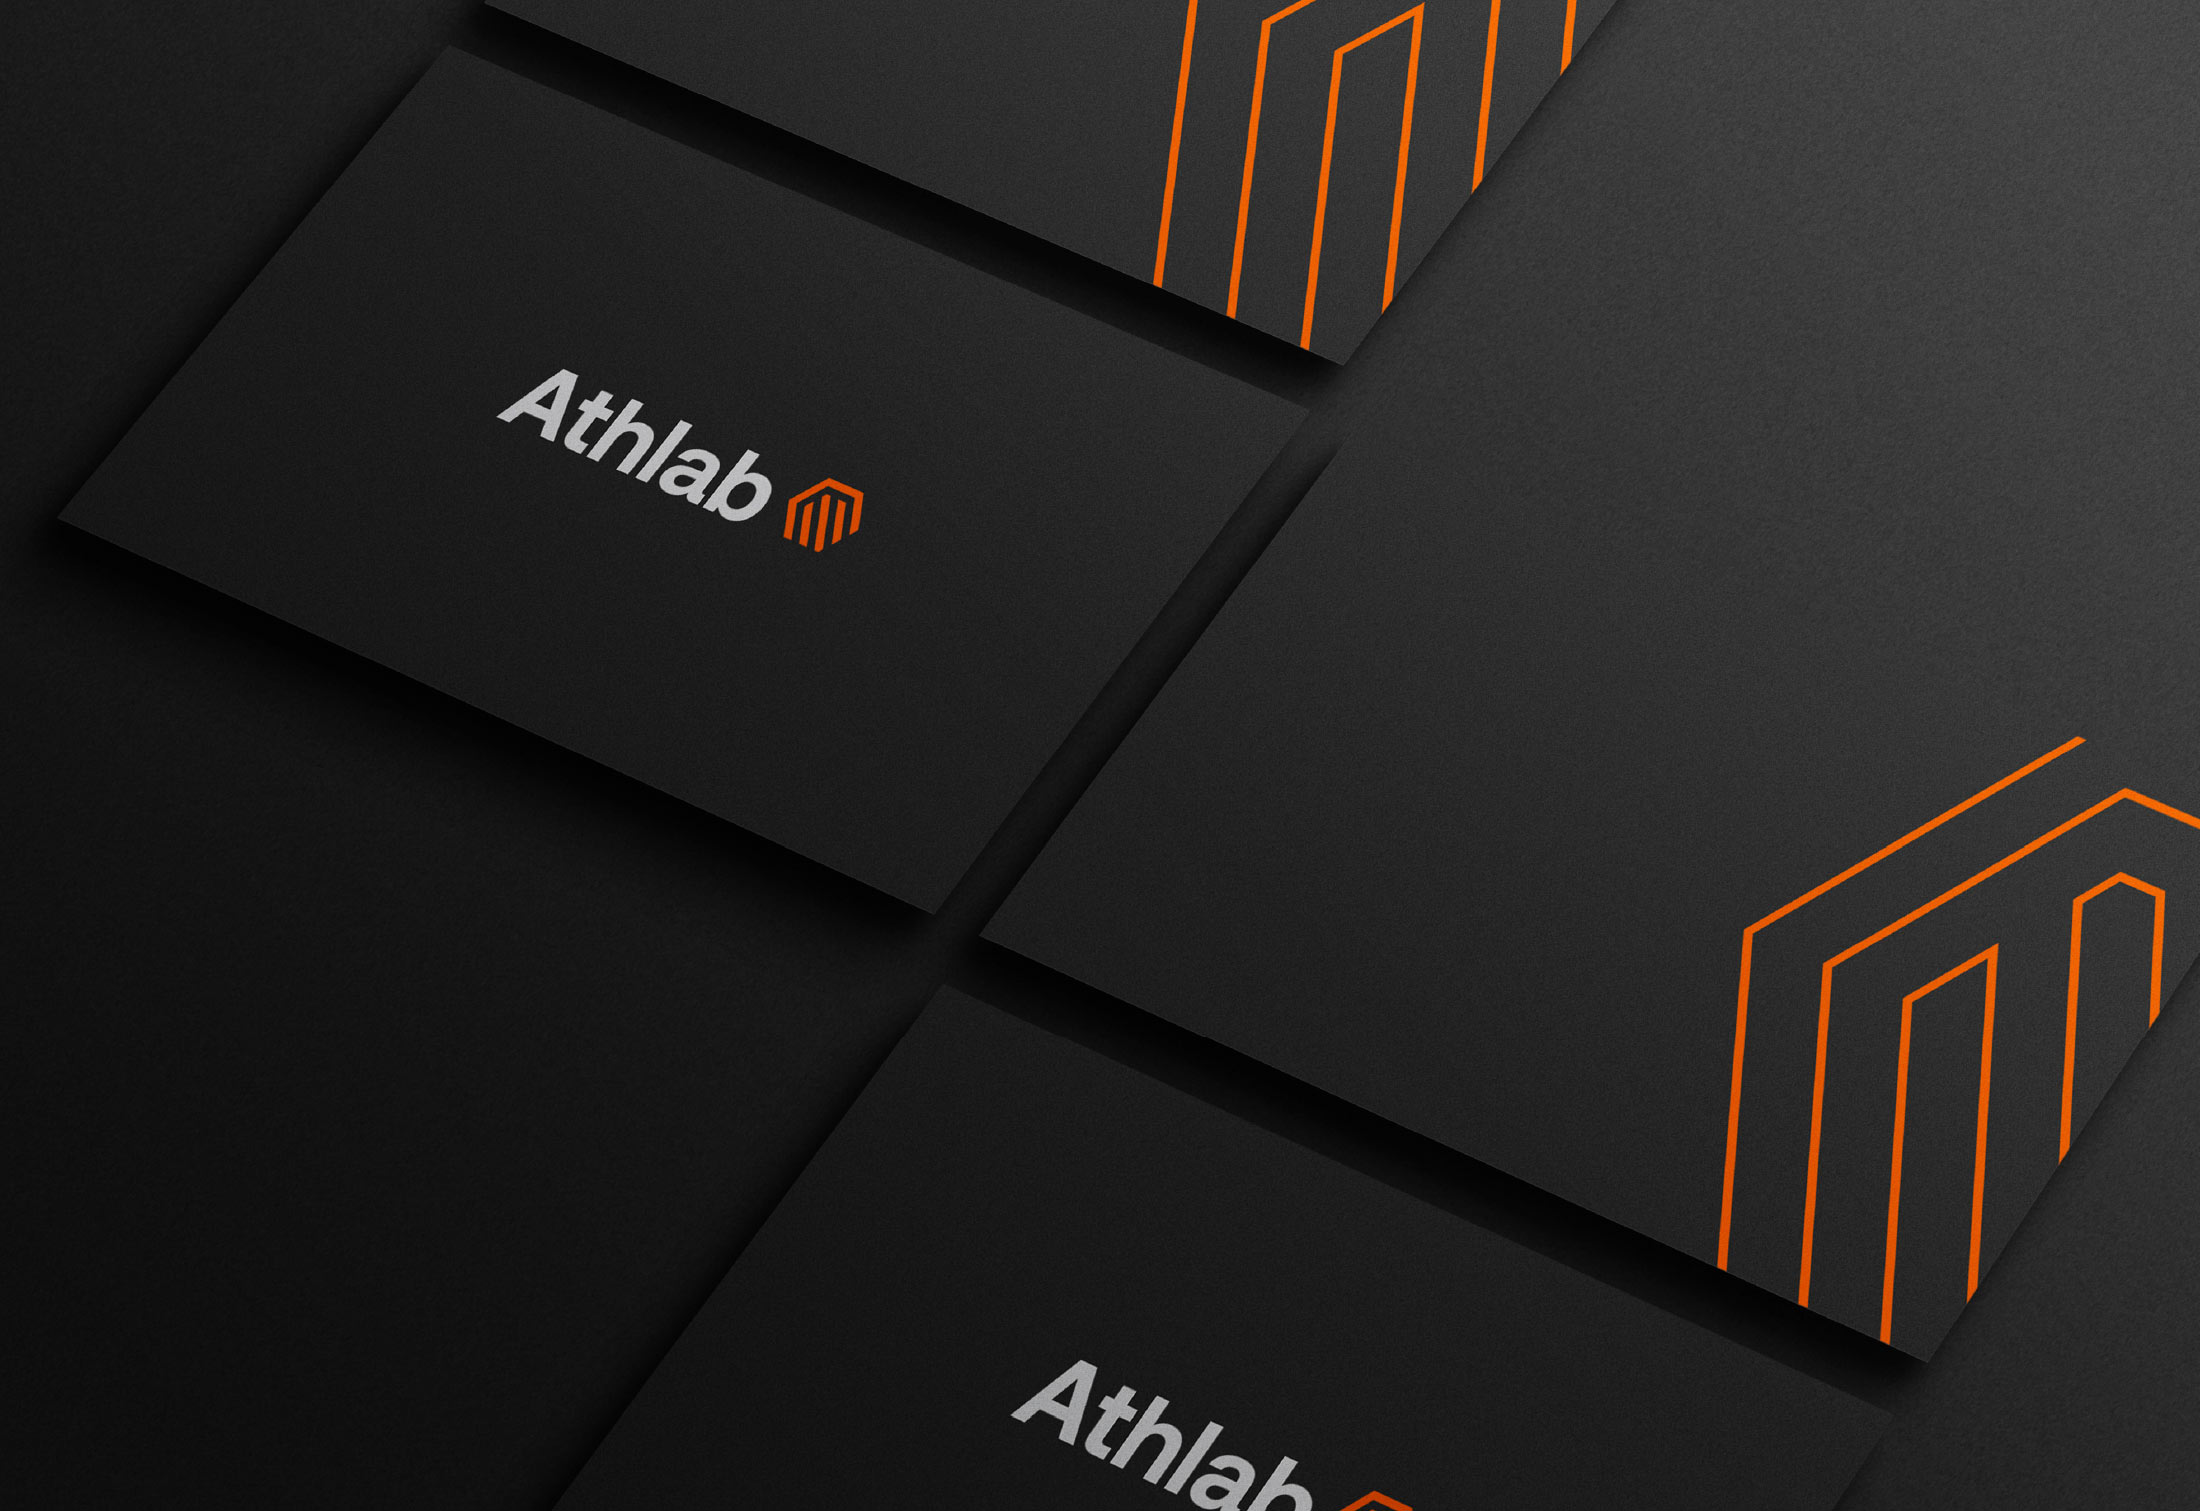 We helped Liv4 evolve into Athlab to give the brand a sharp focus on the fitness and recovery space it aims challenge.